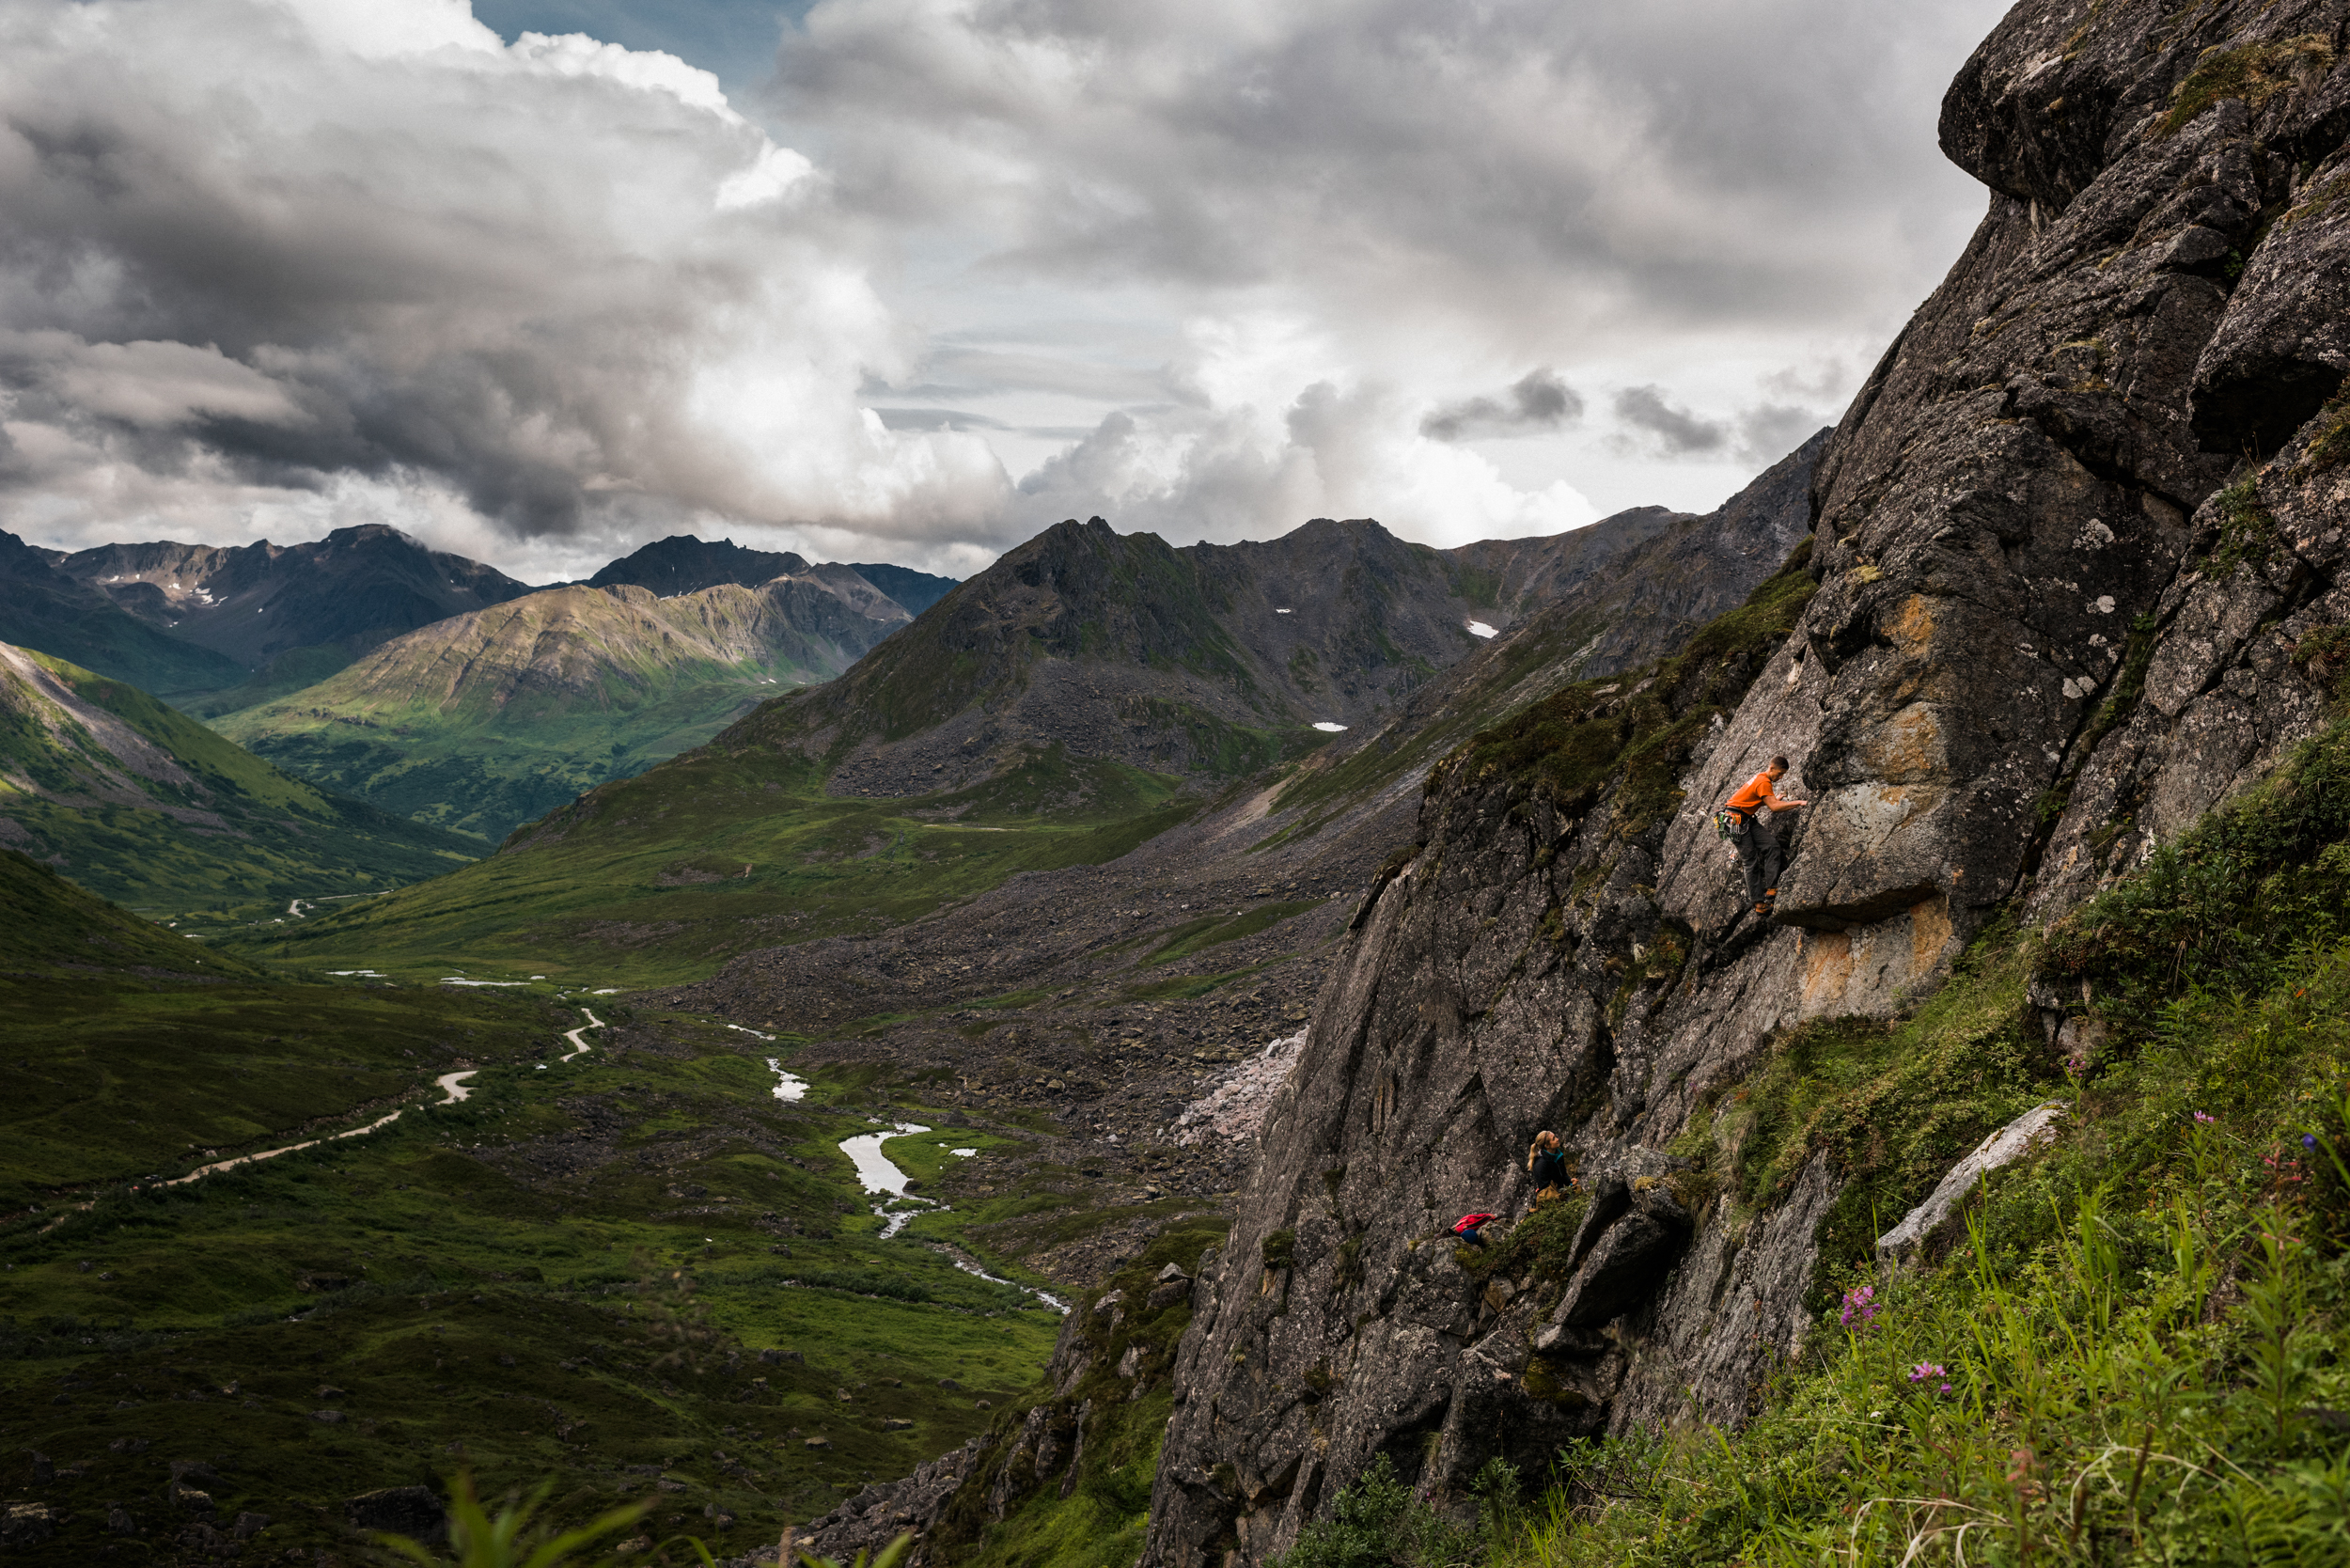 TaraShupe_Photography_Alaska_RockClimbing_HatchersPass_Travel_Photographer_Women_Adventure_043.jpg